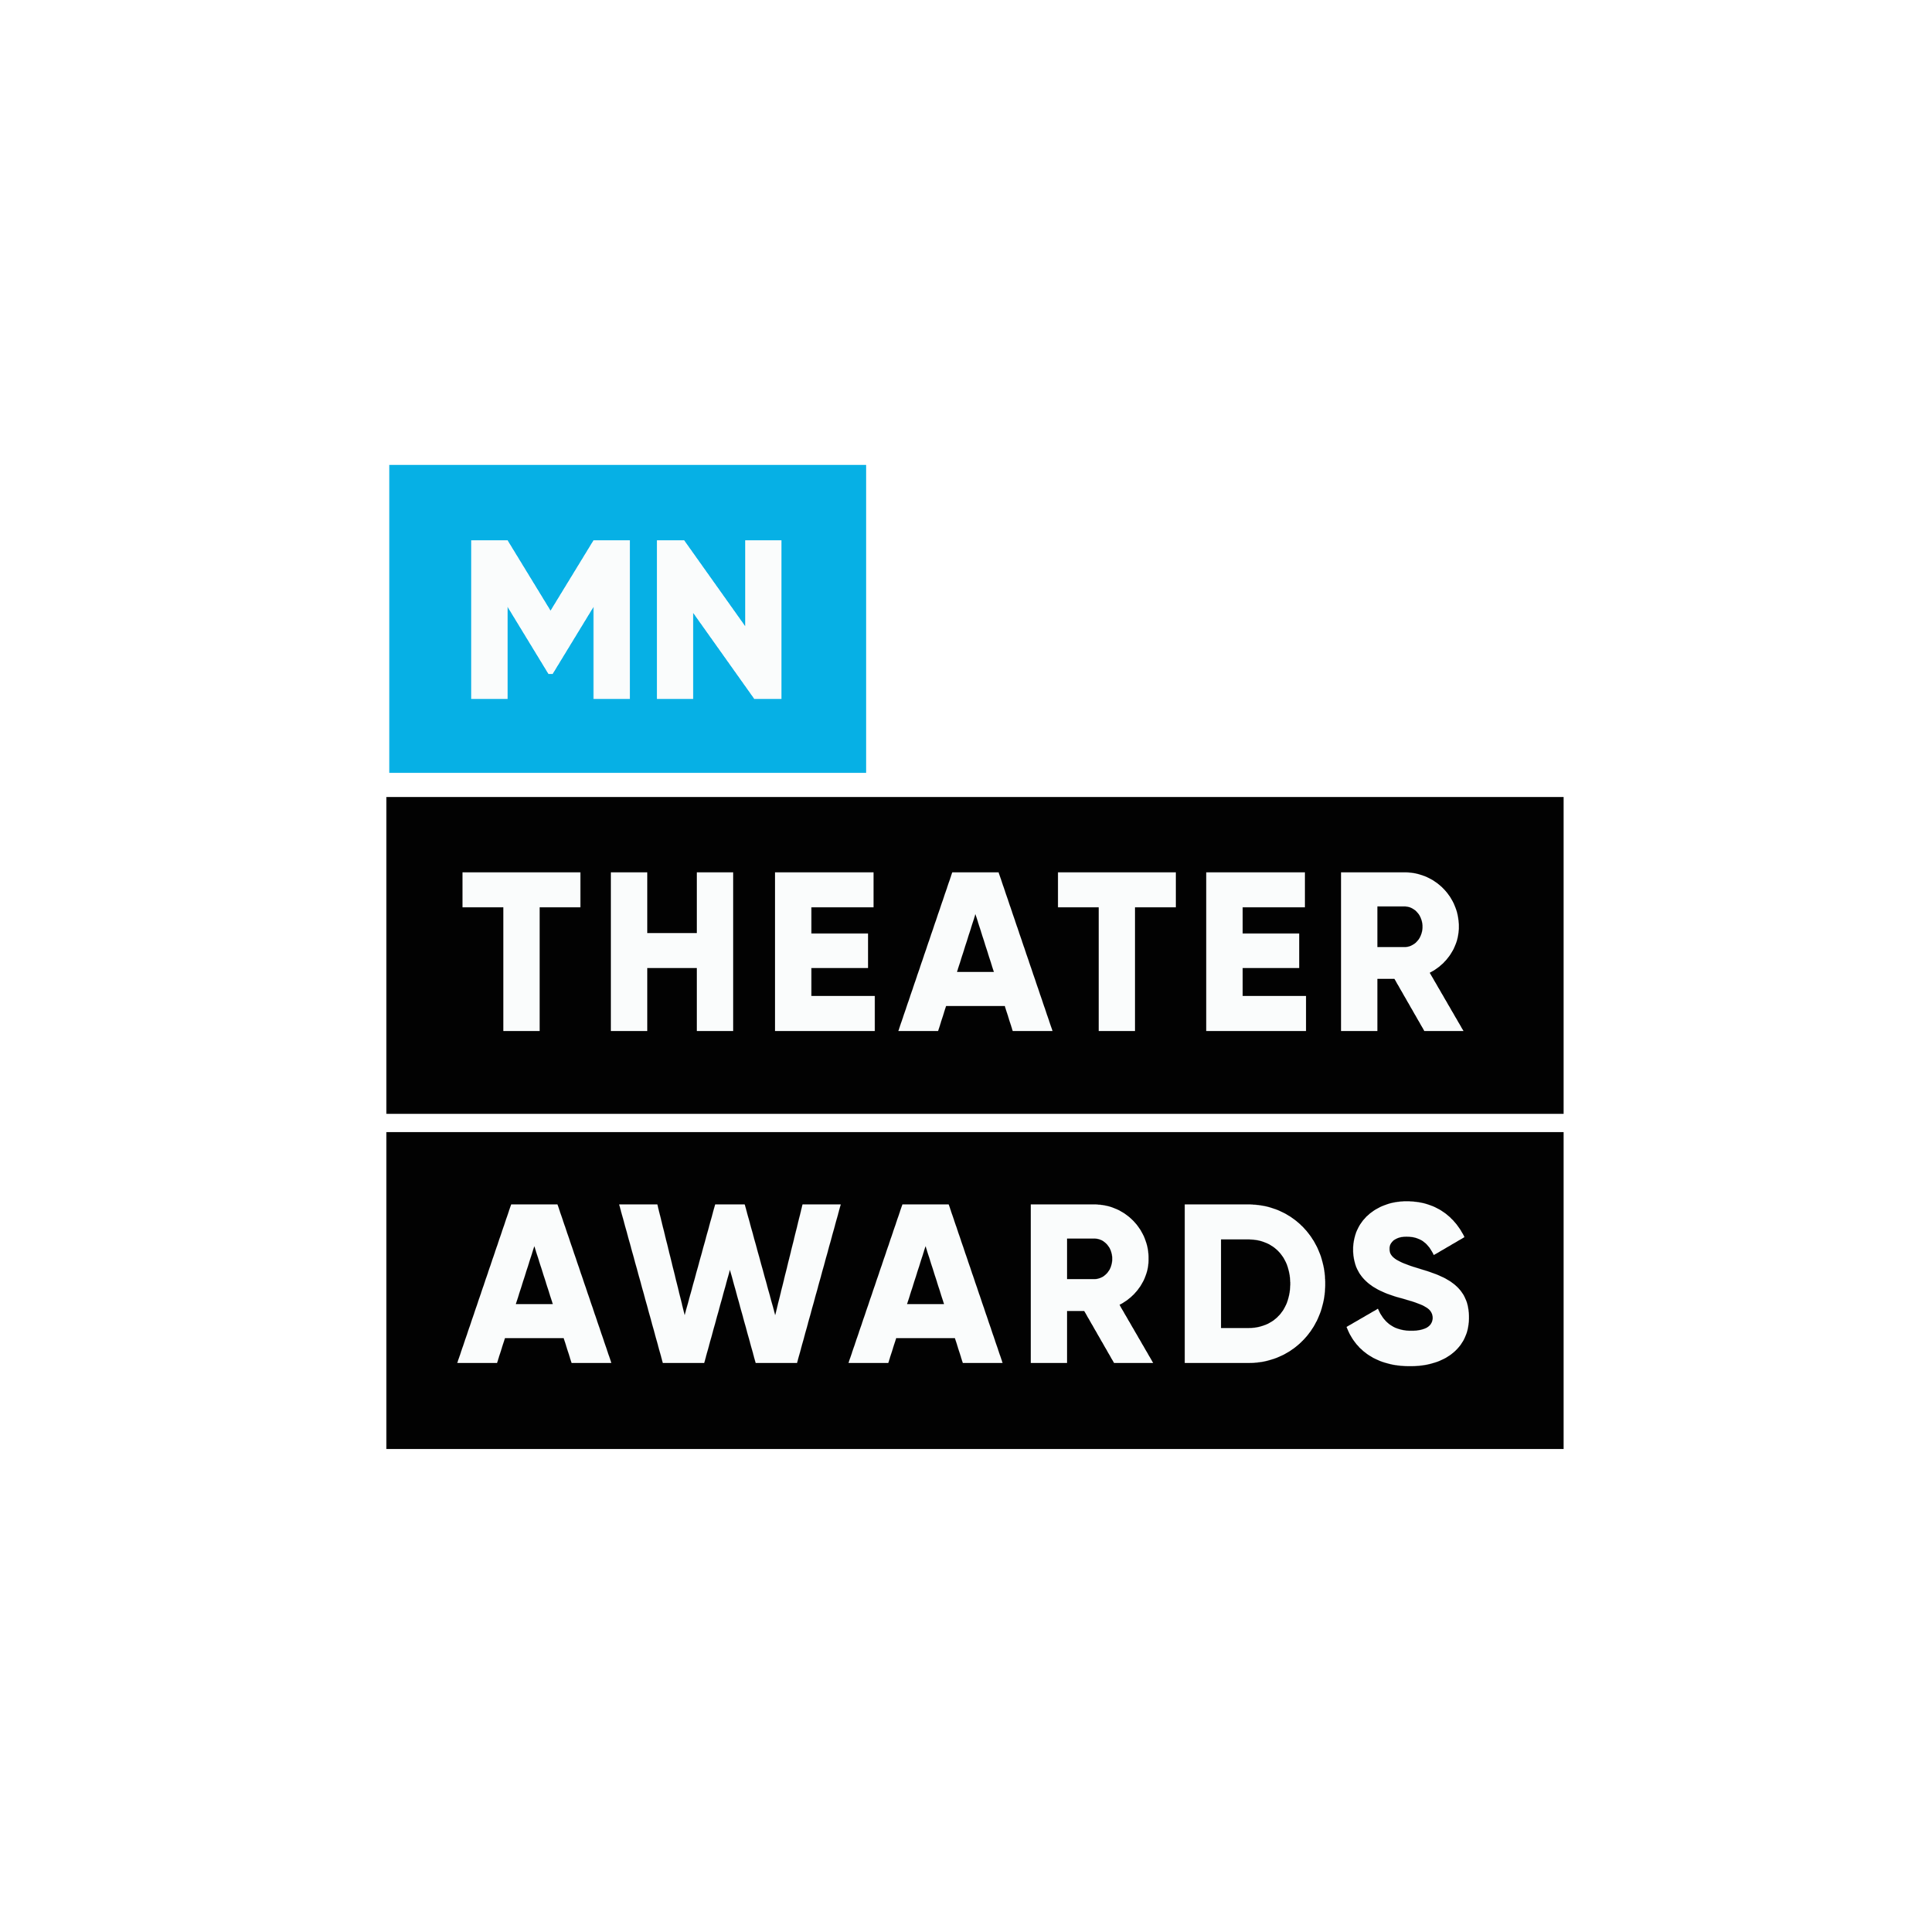 MN Theater Awards